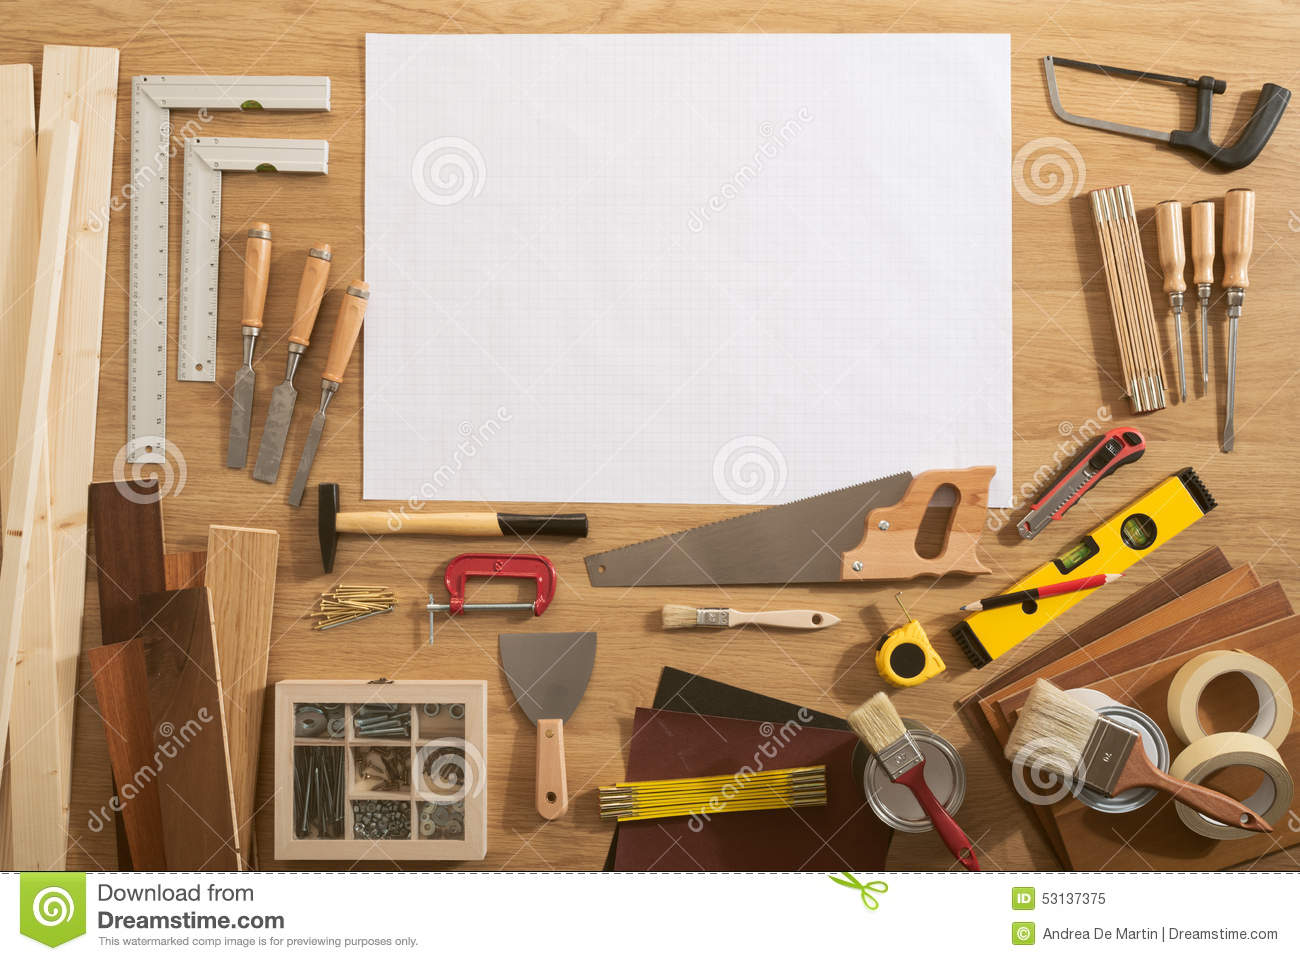 Carpentry best computers for business majors